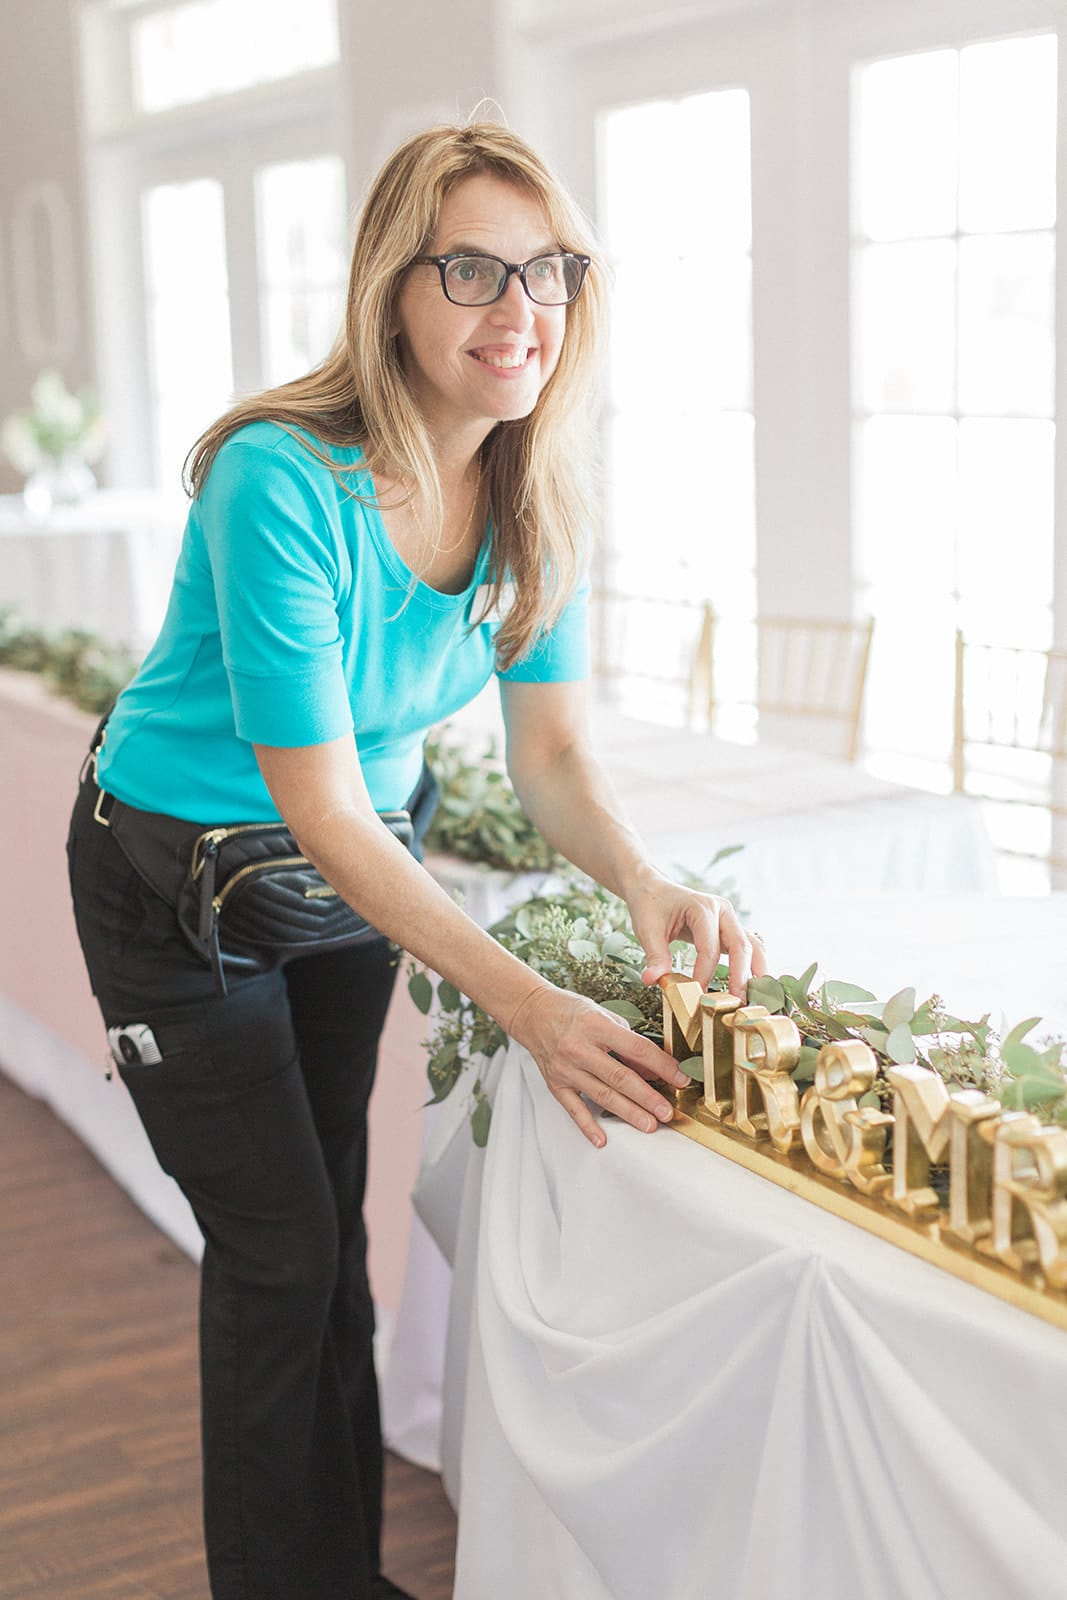 woman wearing glasses black pants teal shirt fixes mr and mrs gold sign on table at wedding while smiling